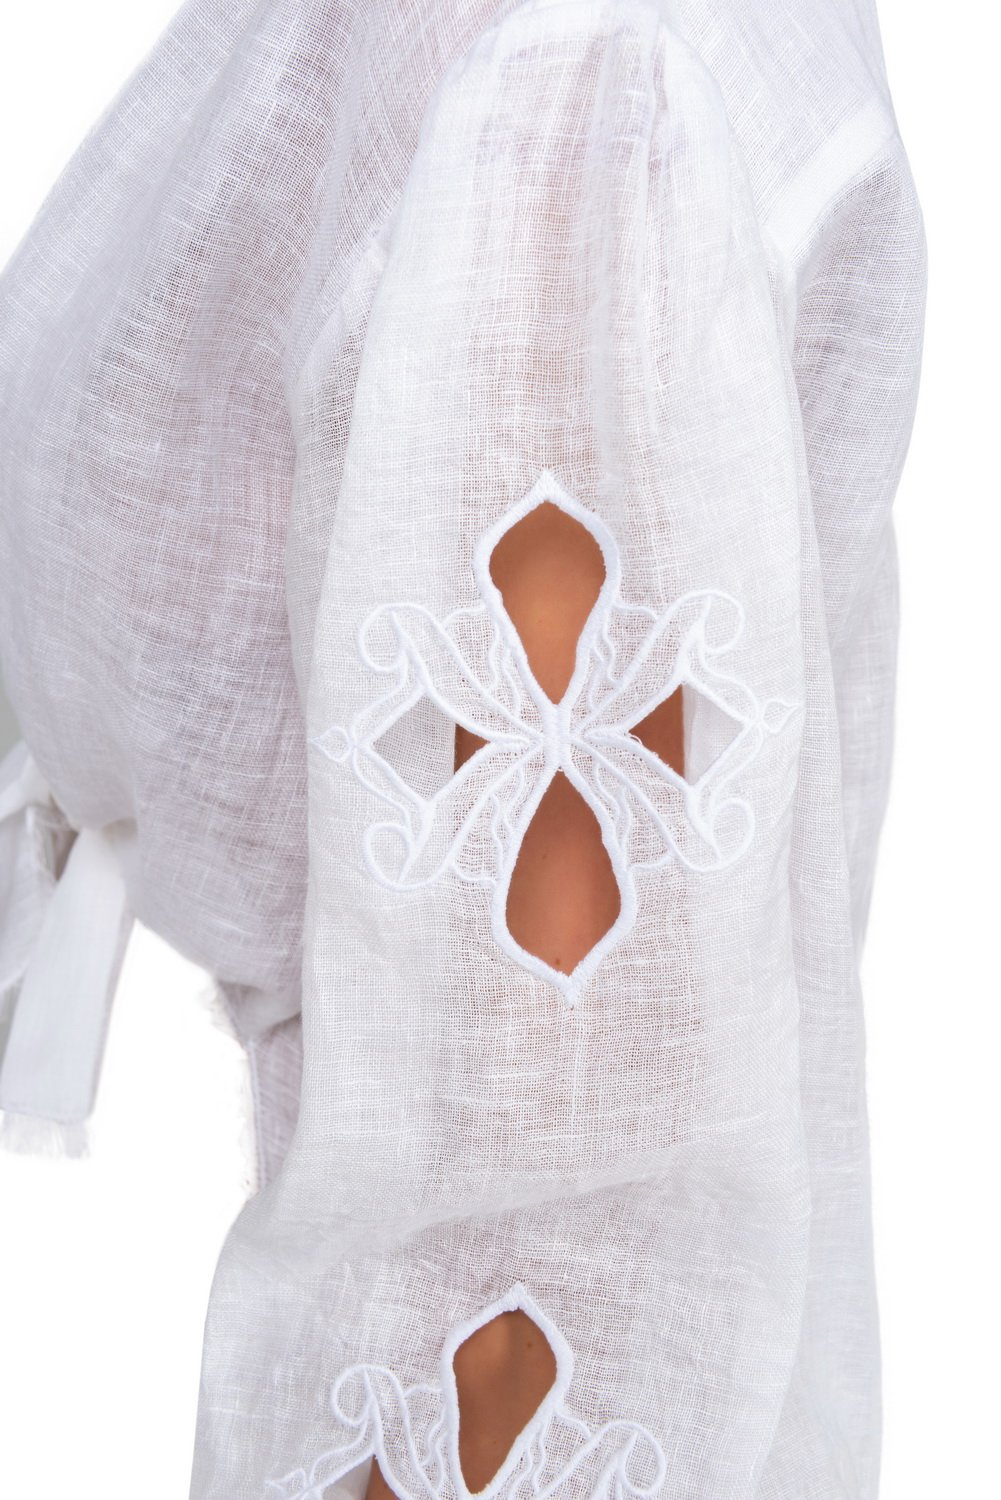 Embroidered Shirt by Atelier Handmade on curated-crowd.com